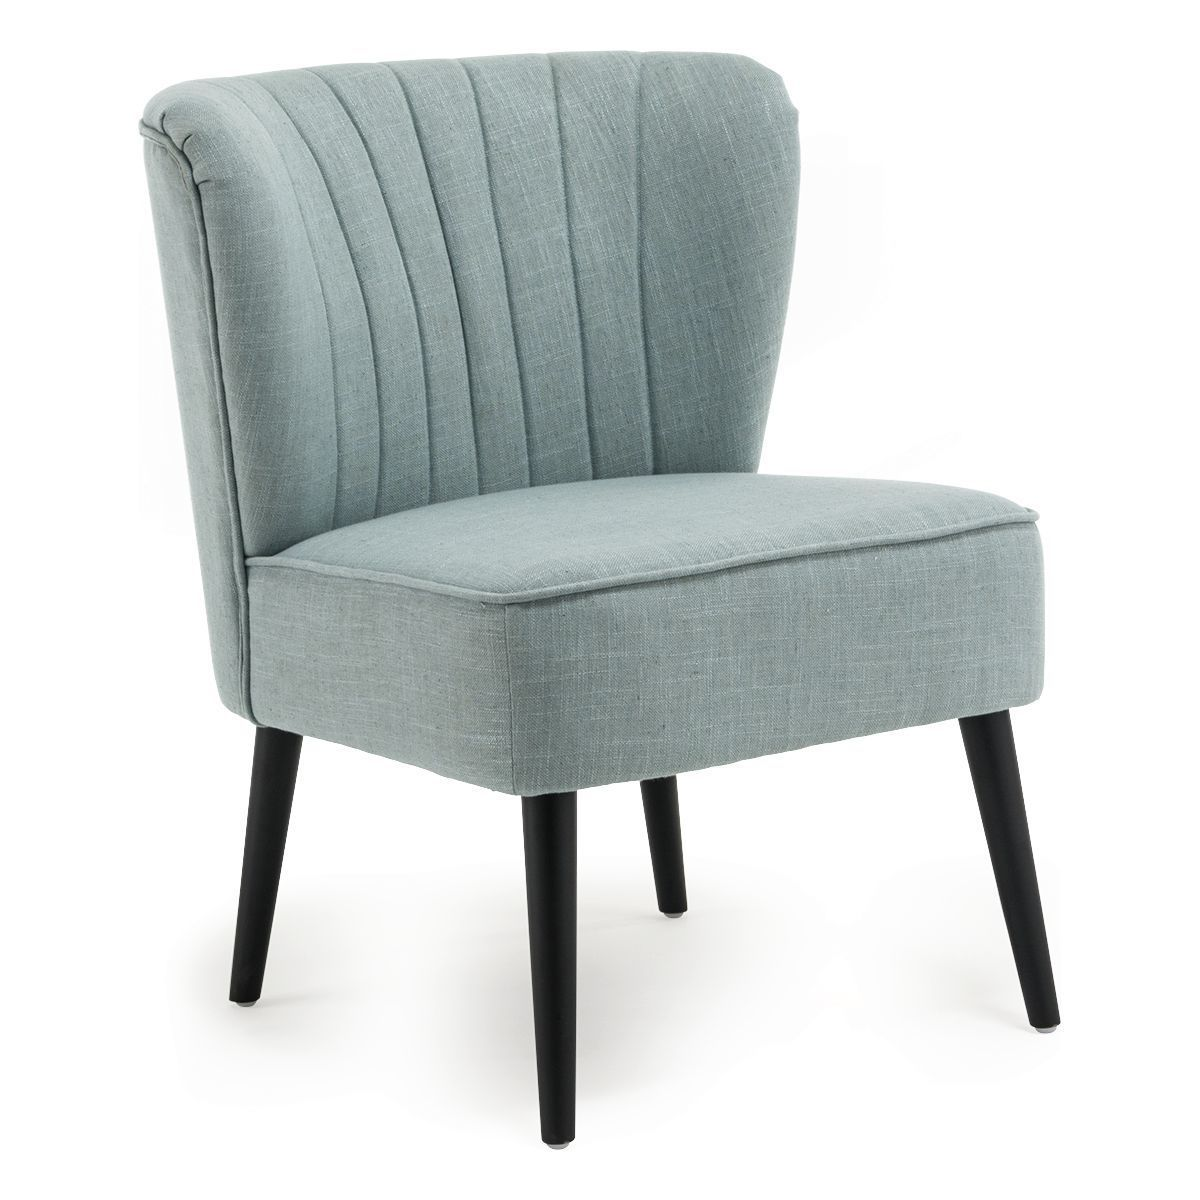 Retro Cocktailsessel Retro Sessel Aus Polyester Sessel Furniture Chair Accent Chairs